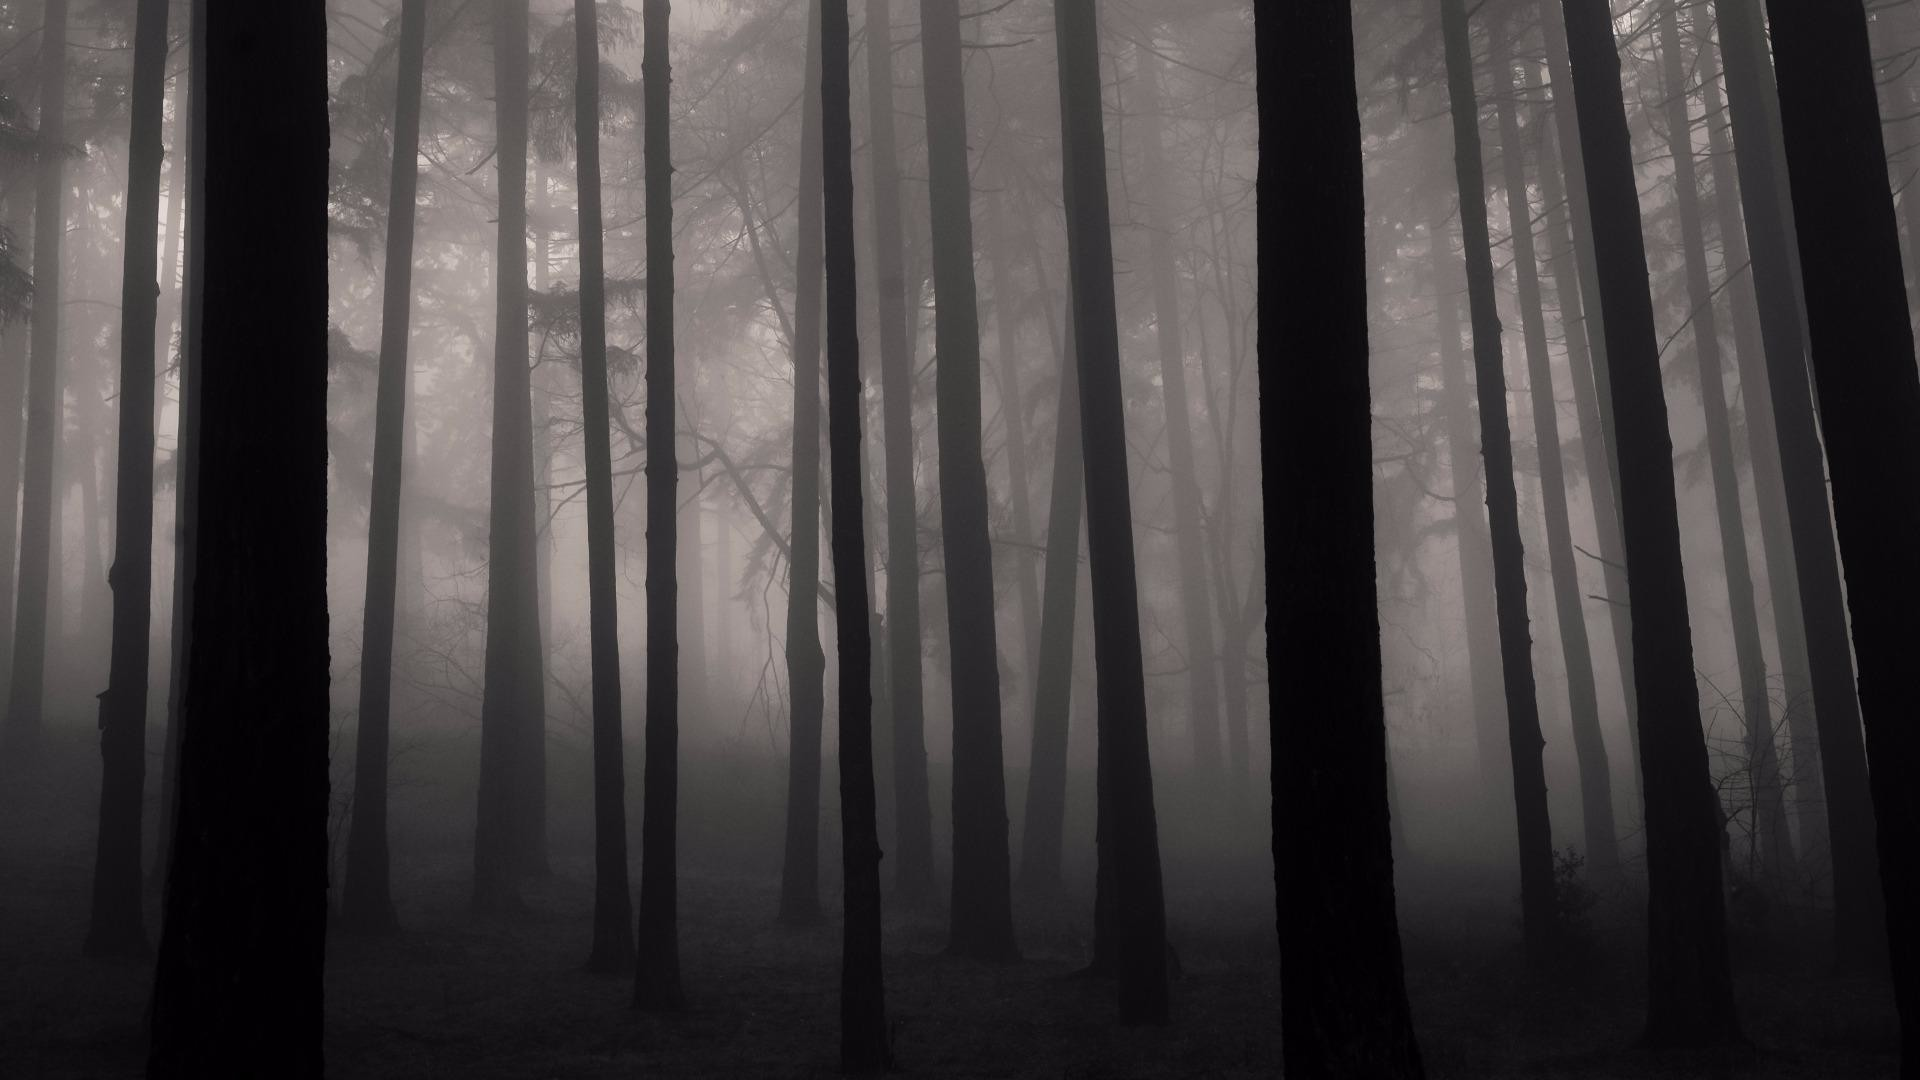 Res: 1920x1080, Foggy Mystic Forest Wallpaper | Wallpaper Studio 10 | Tens of thousands HD  and UltraHD wallpapers for Android, Windows and Xbox